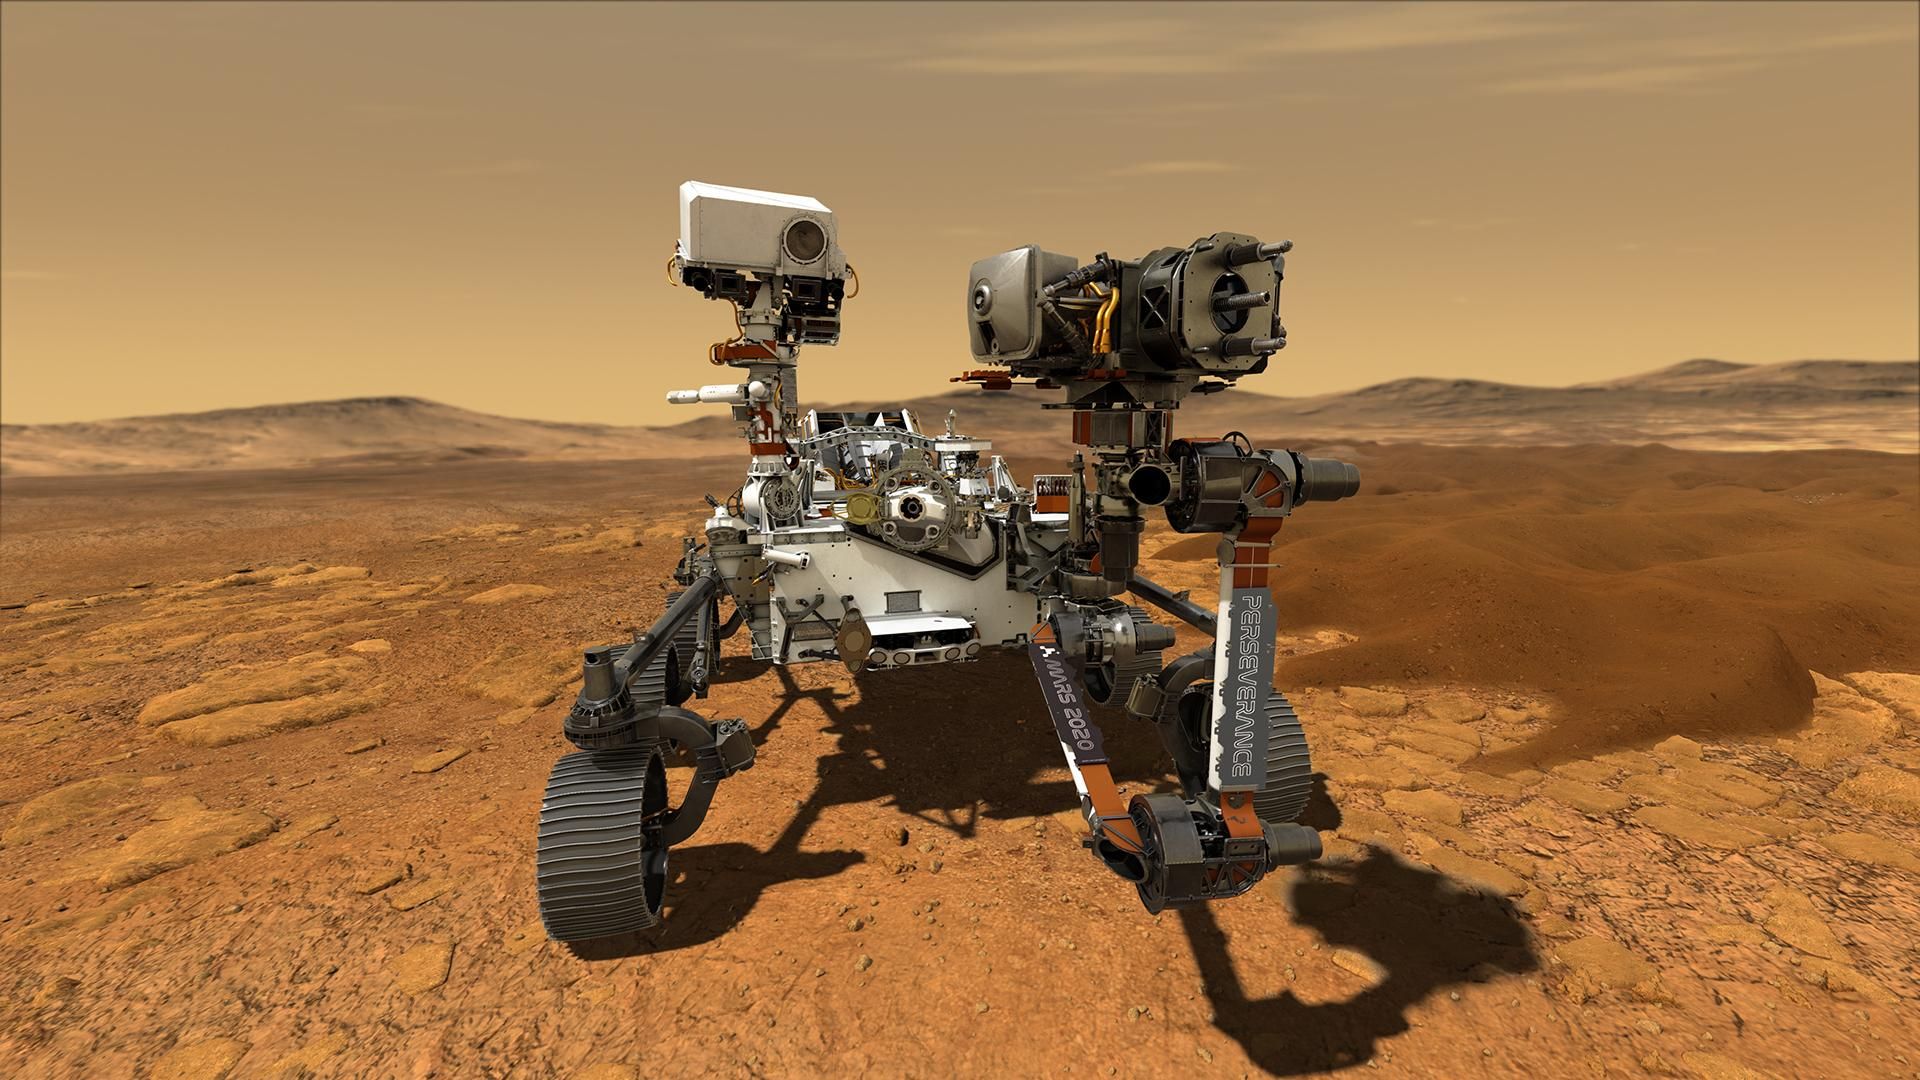 The rover will hunt for signs of extra-terrestrial life on the Red Planet